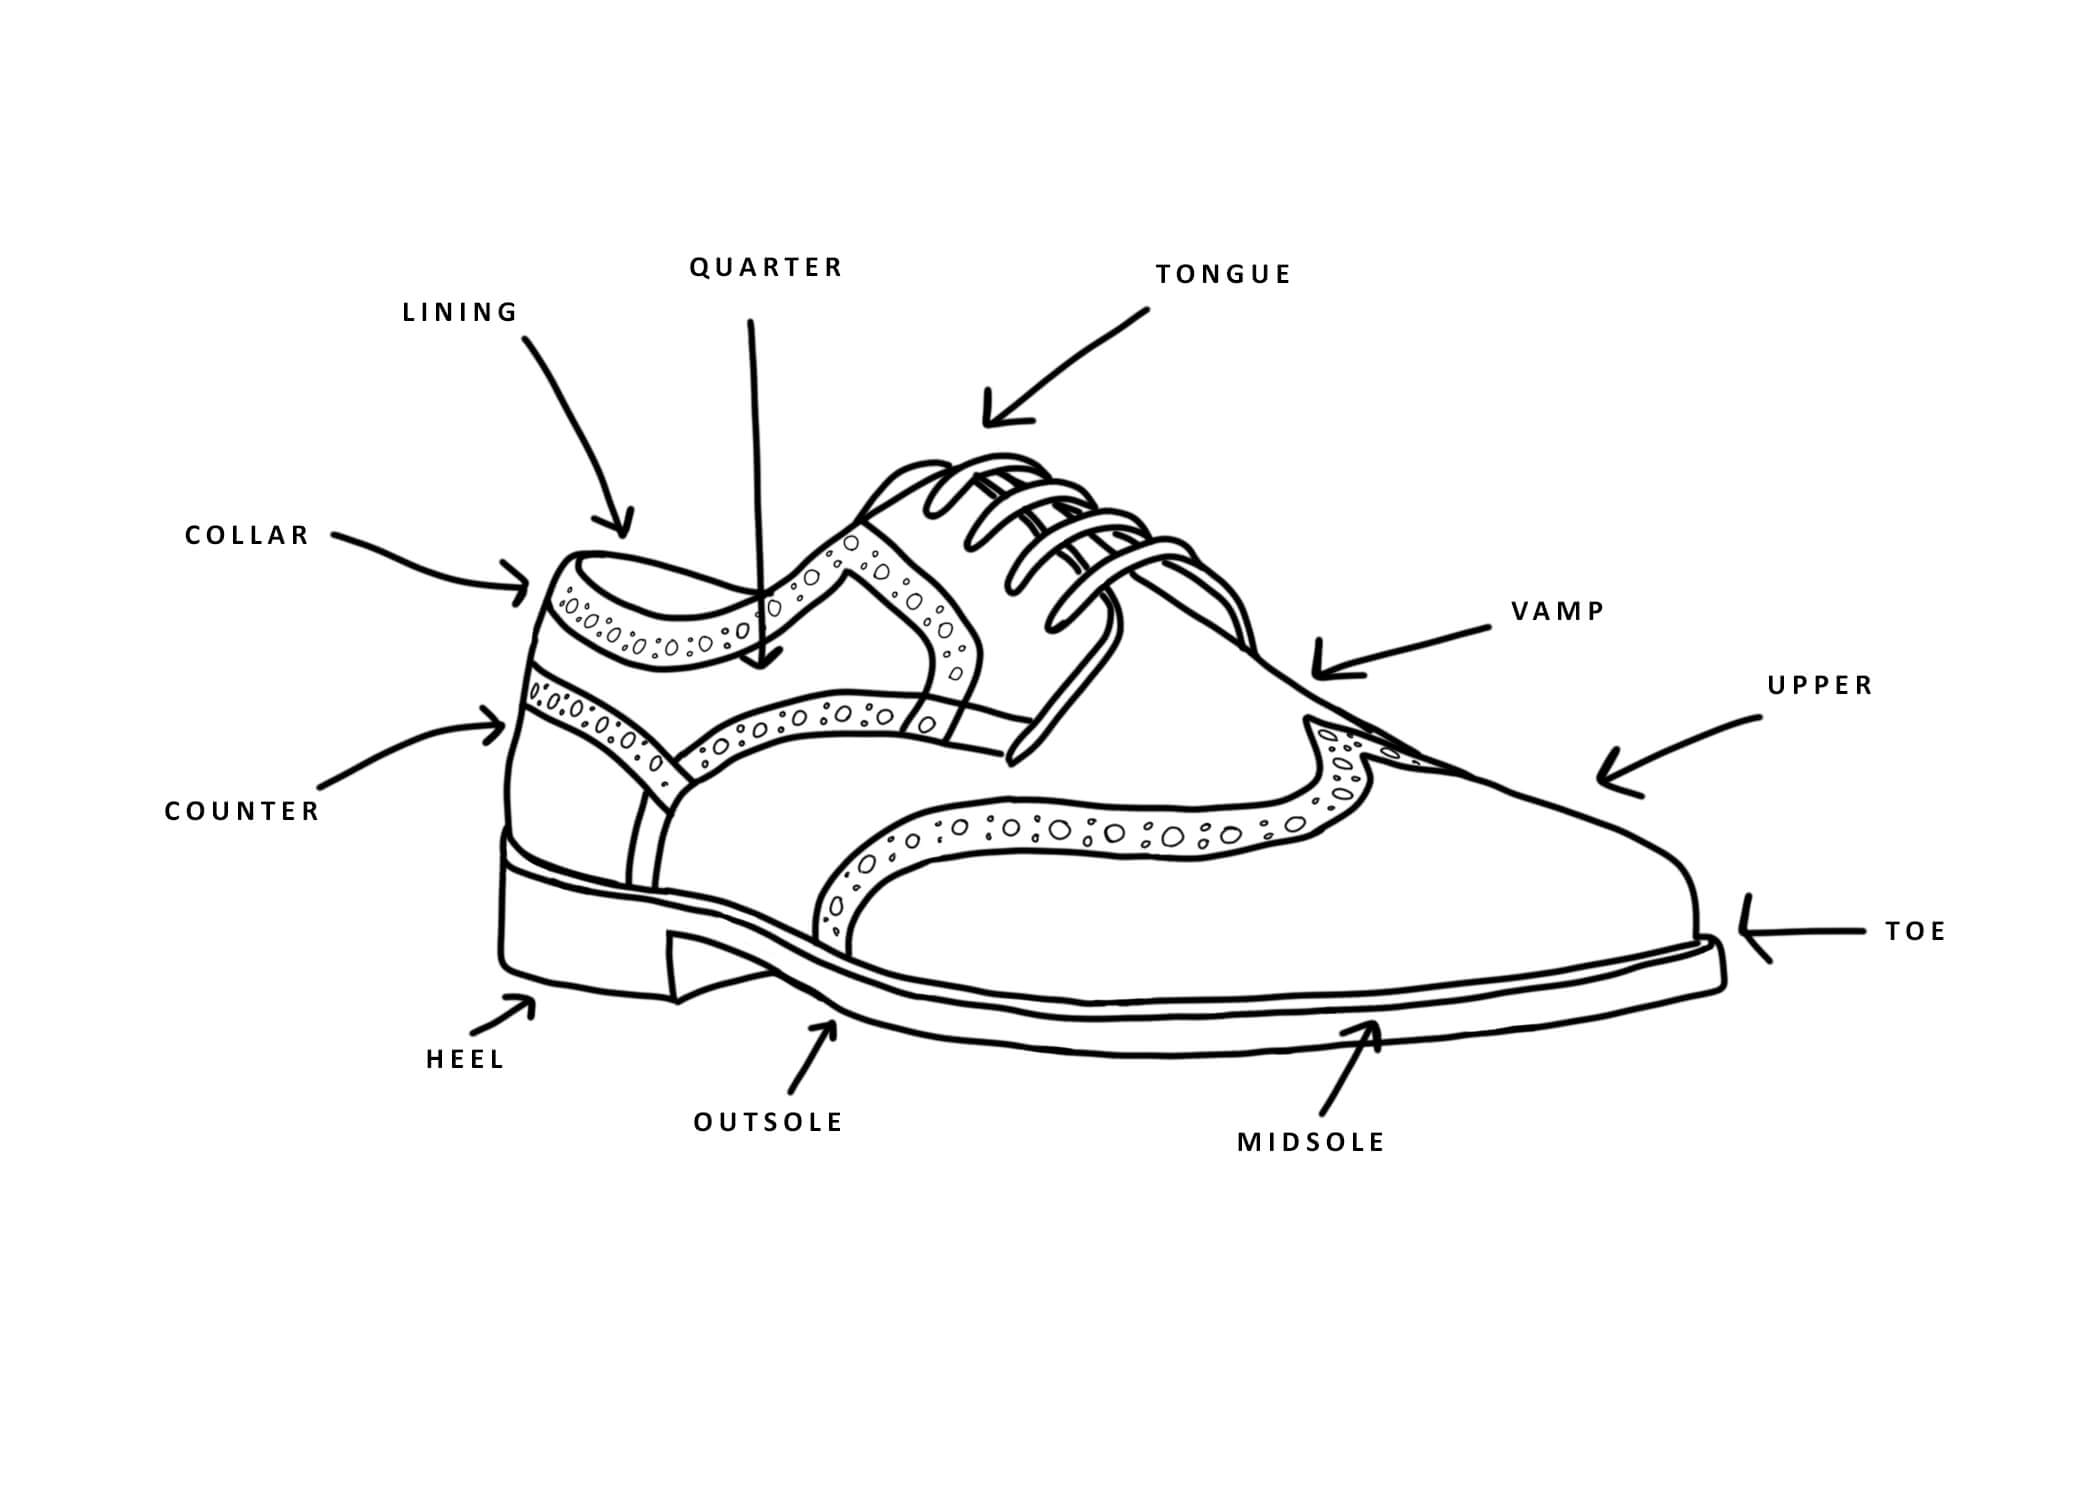 The Anatomy of a Shoe Diagram With Glossary